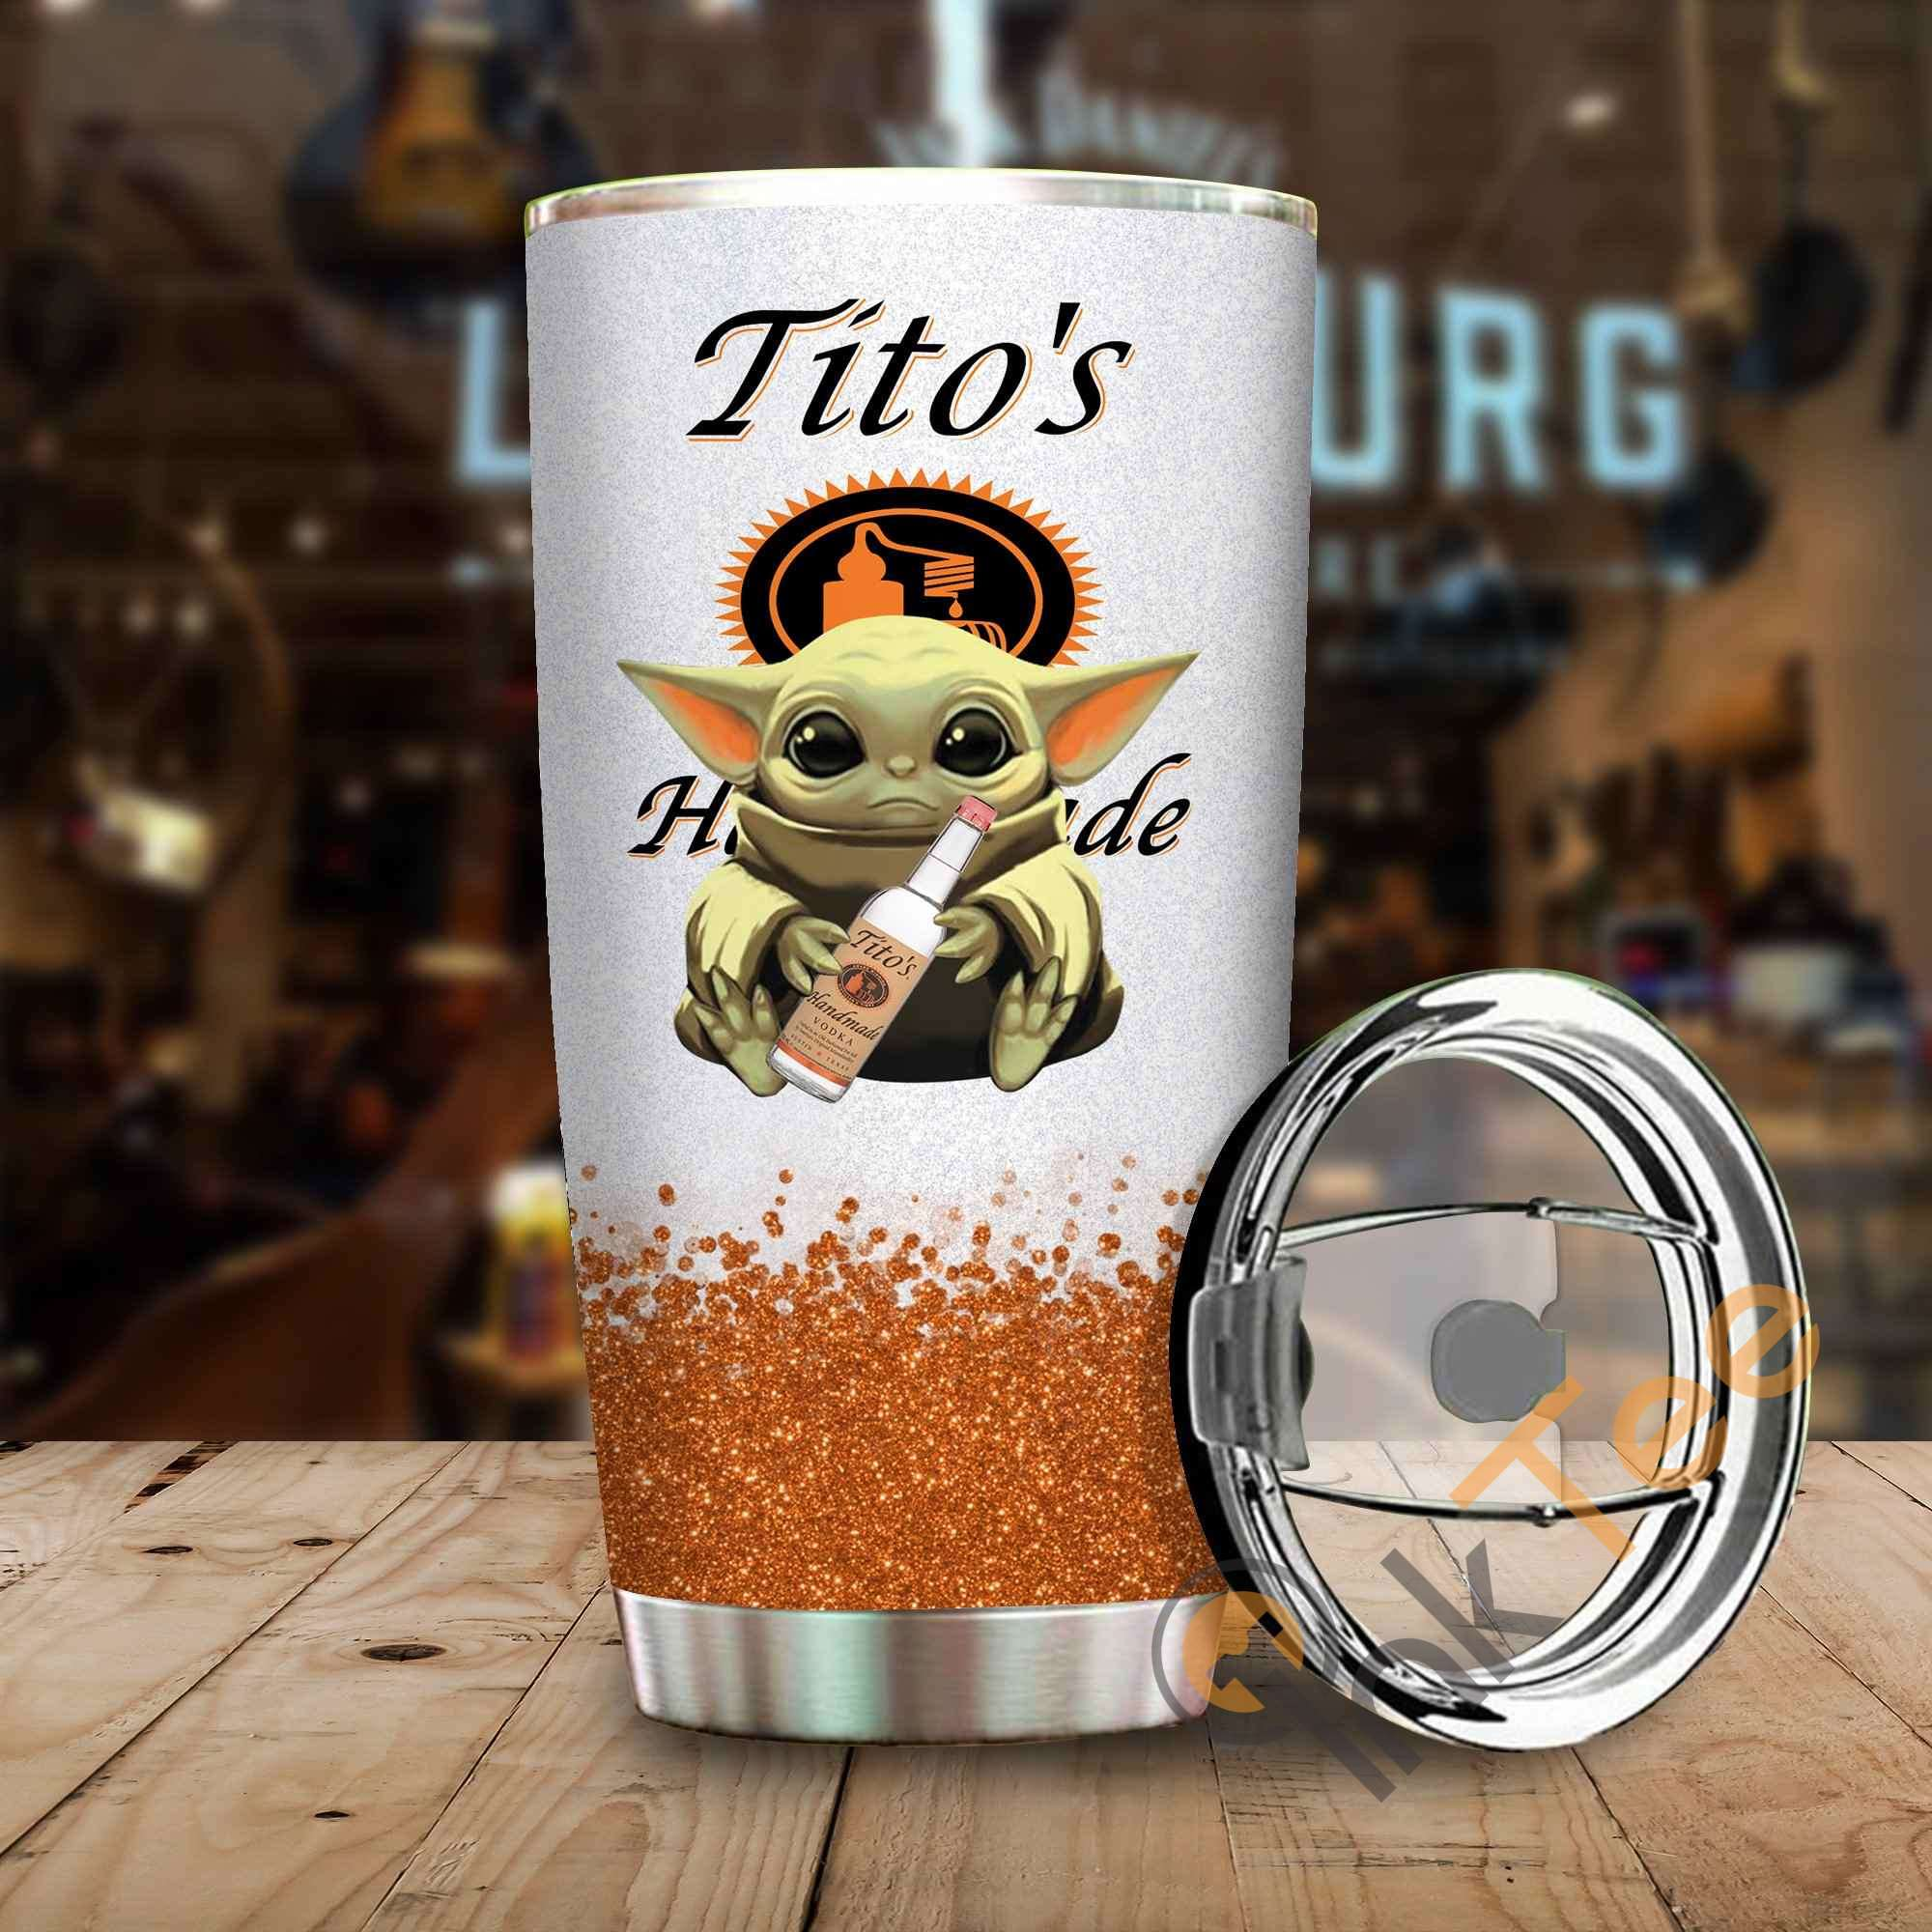 Baby Yoda Hold Tito's Amazon Best Seller Sku 4086 Stainless Steel Tumbler